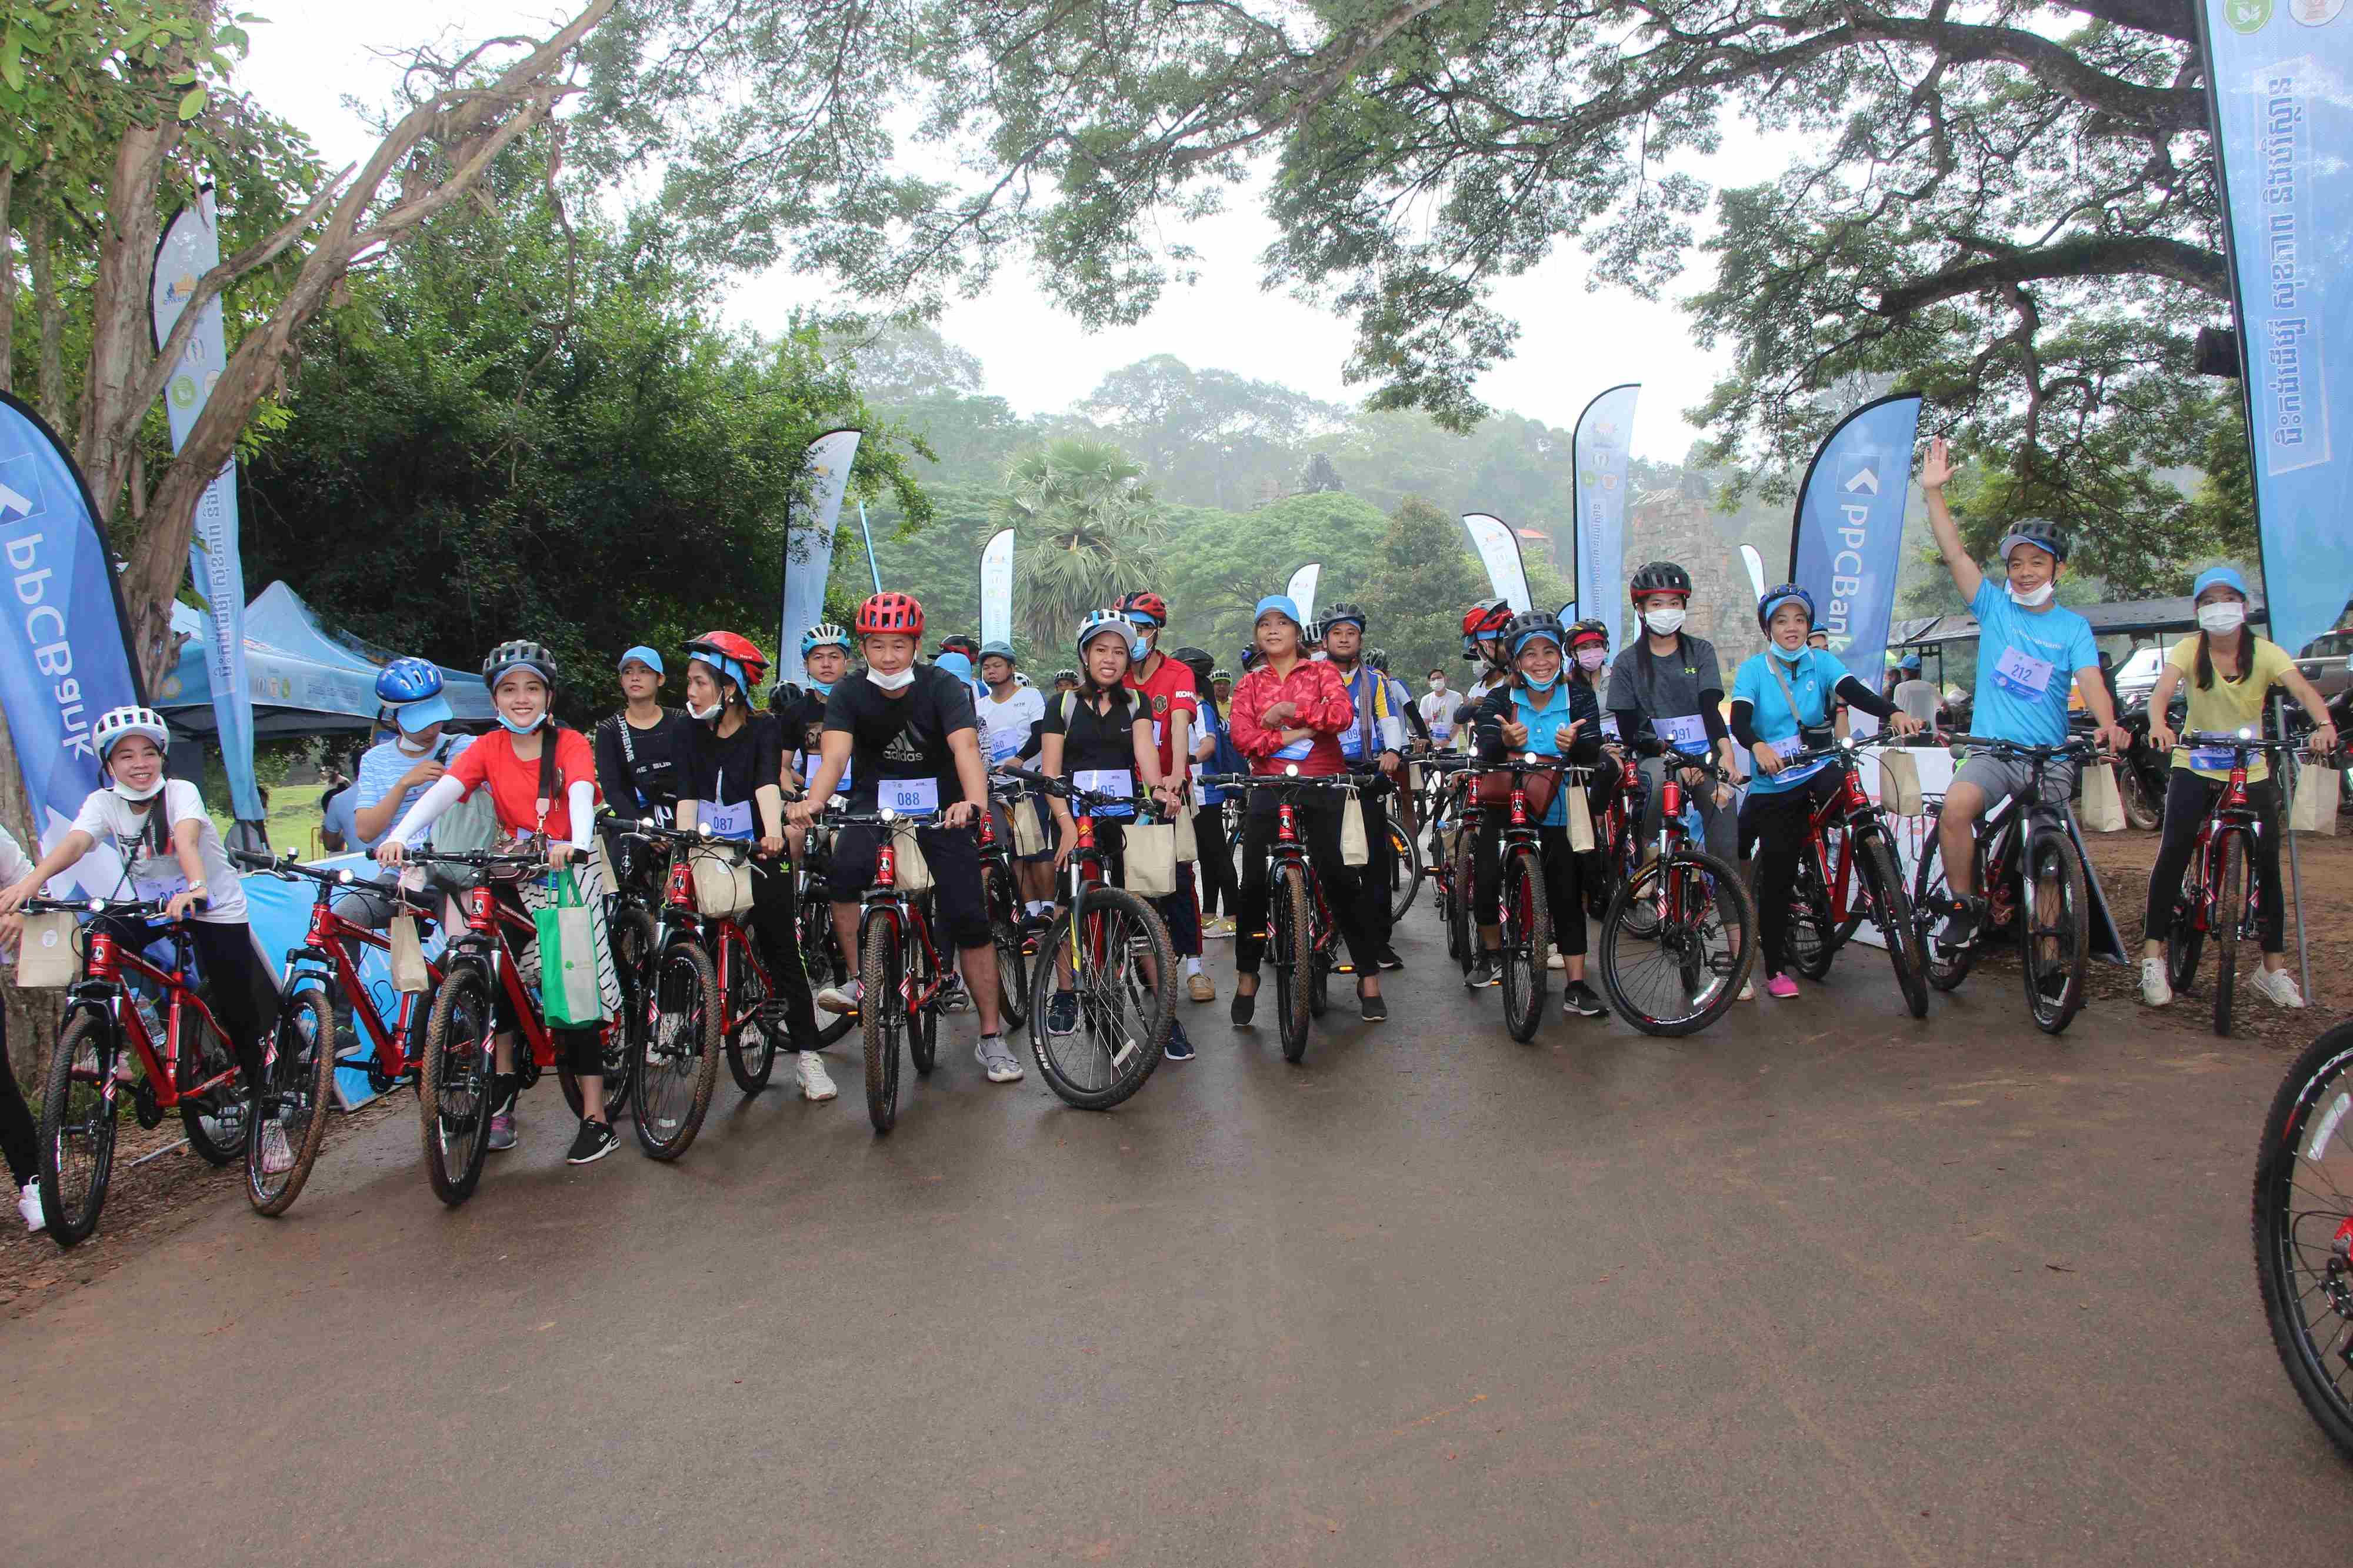 J Trust Royal Bank shows support to The ABC's 2020  Bankers' Cycling Event in Siem Reap